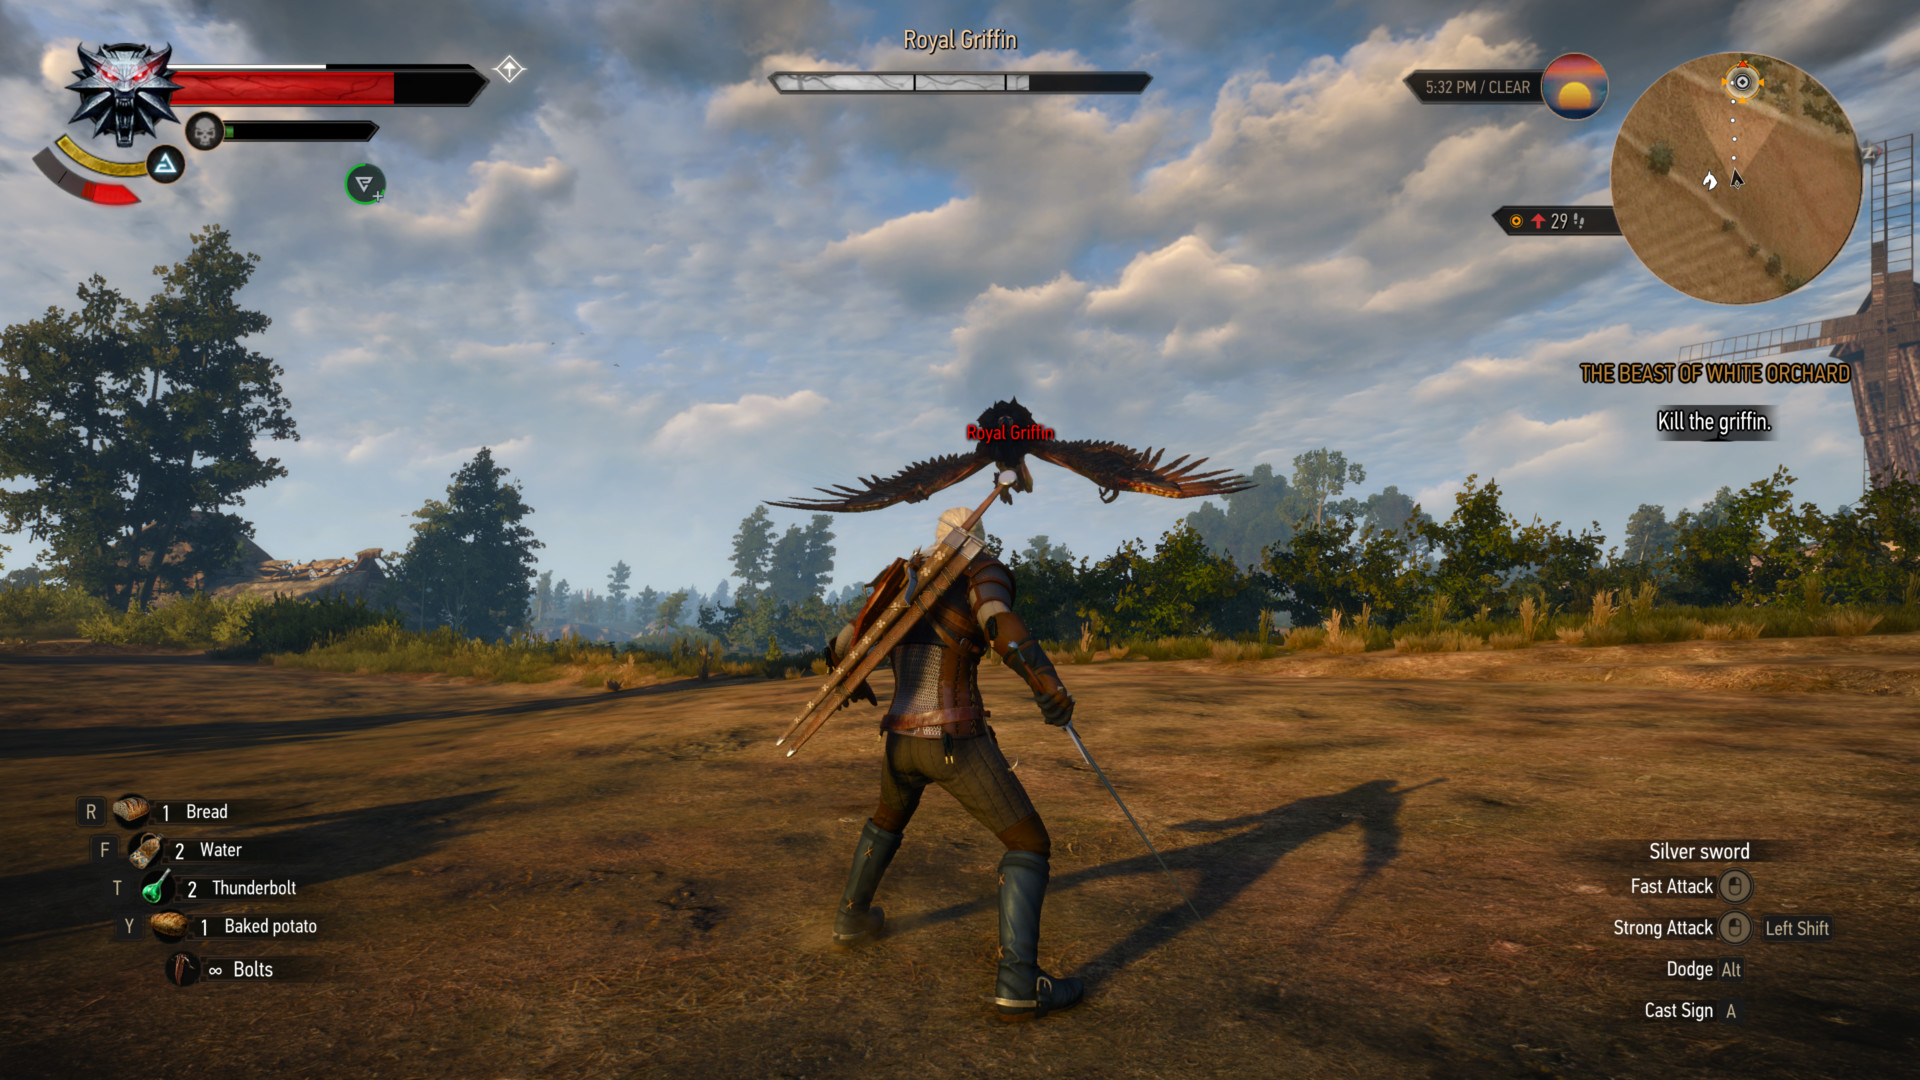 Combat screenshot of The Witcher 3: Wild Hunt video game interface.